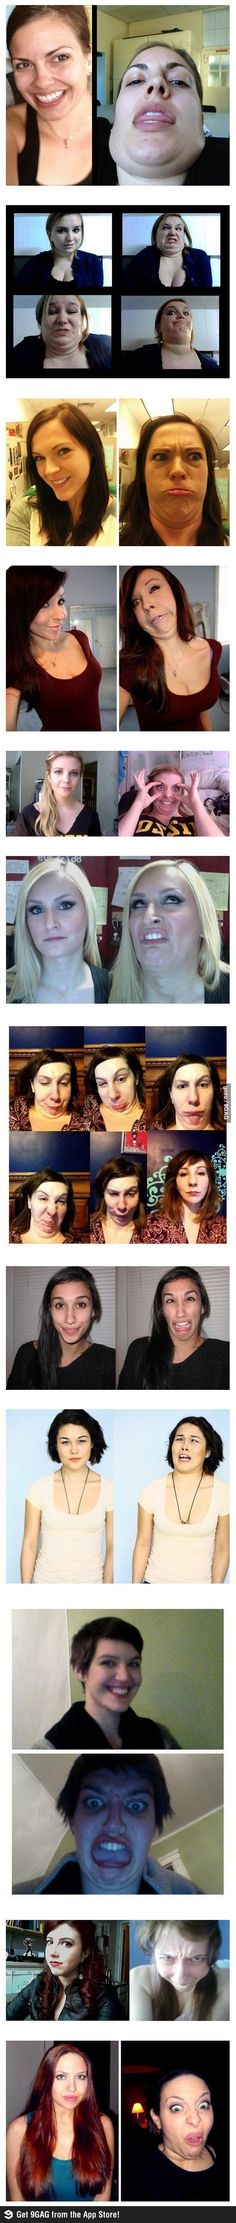 This is AMAZING! I hate it when girls freak out over an ugly picture. Everyone is capable of making these faces. It's hilarious!